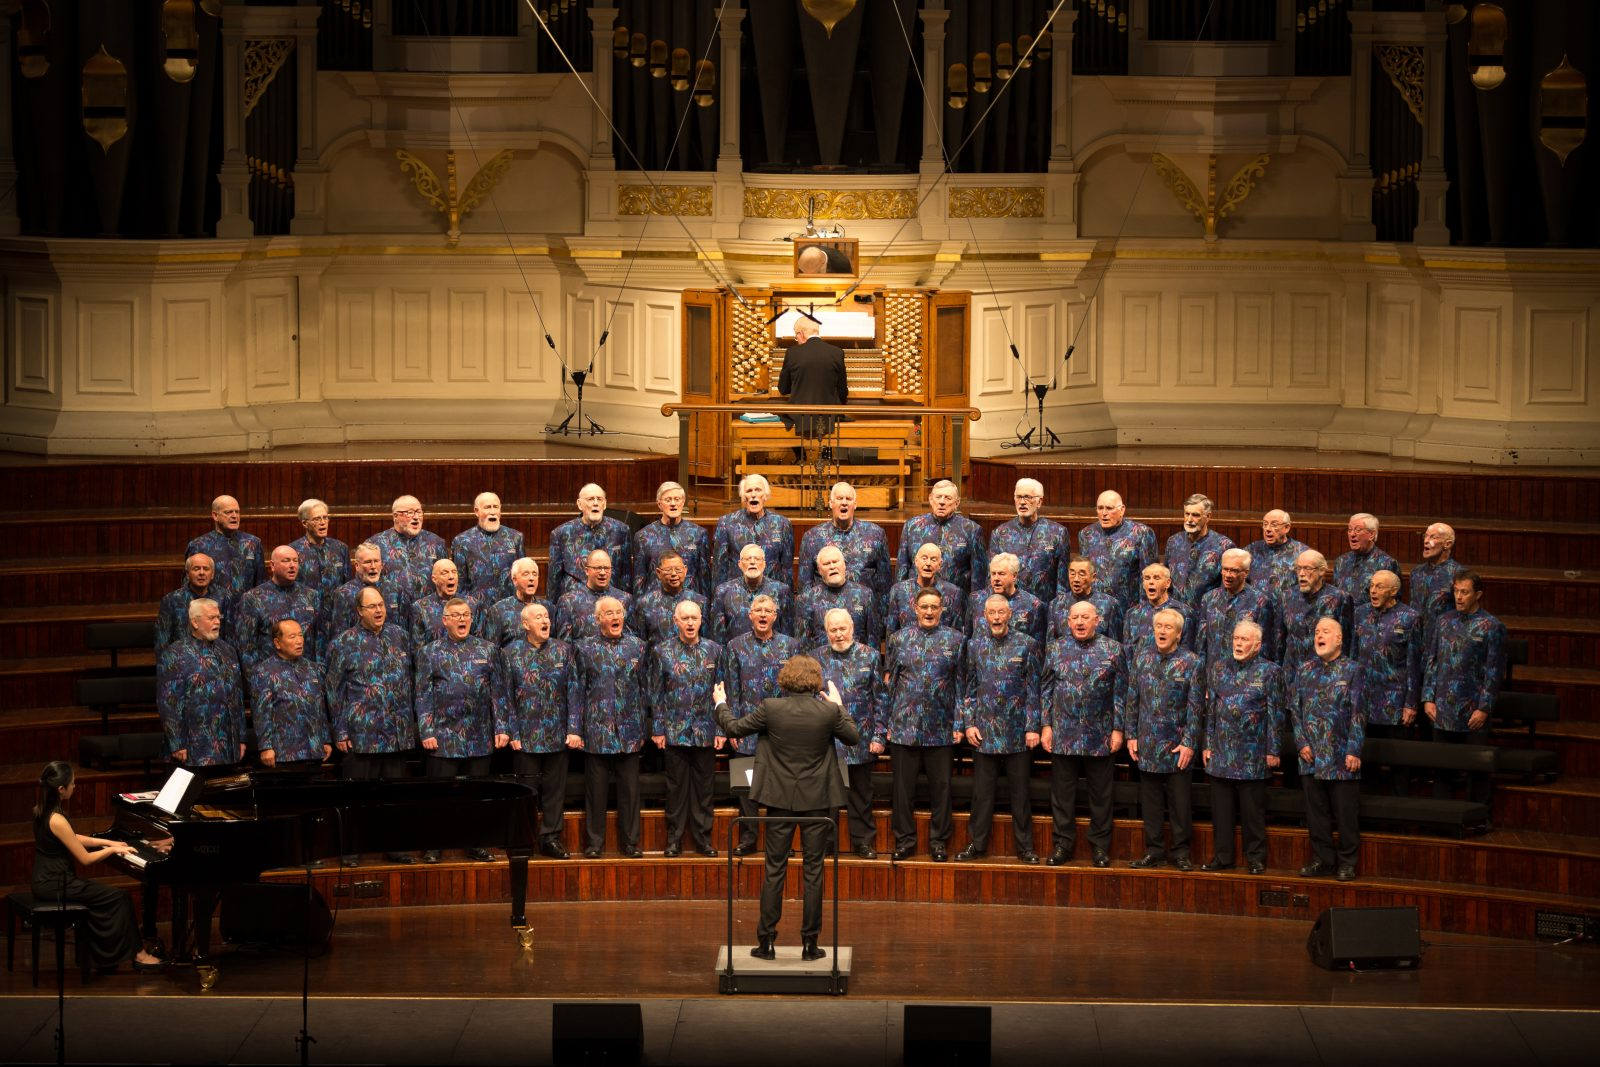 Sydney Male Choir, Music Director and Accompanist